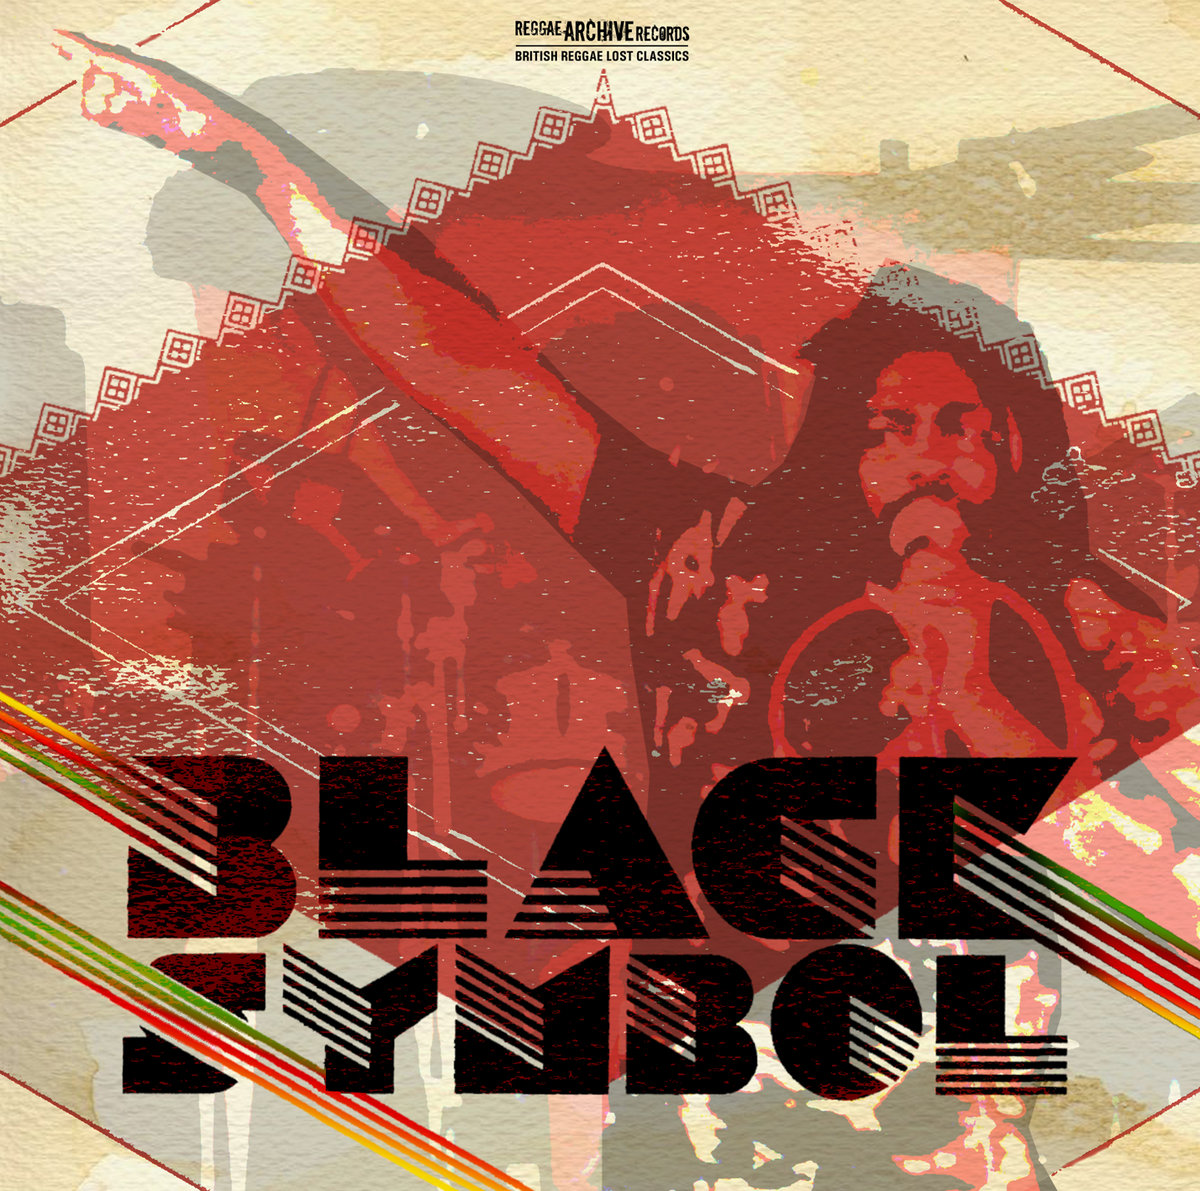 Black Symbol | Reggae Archive Records